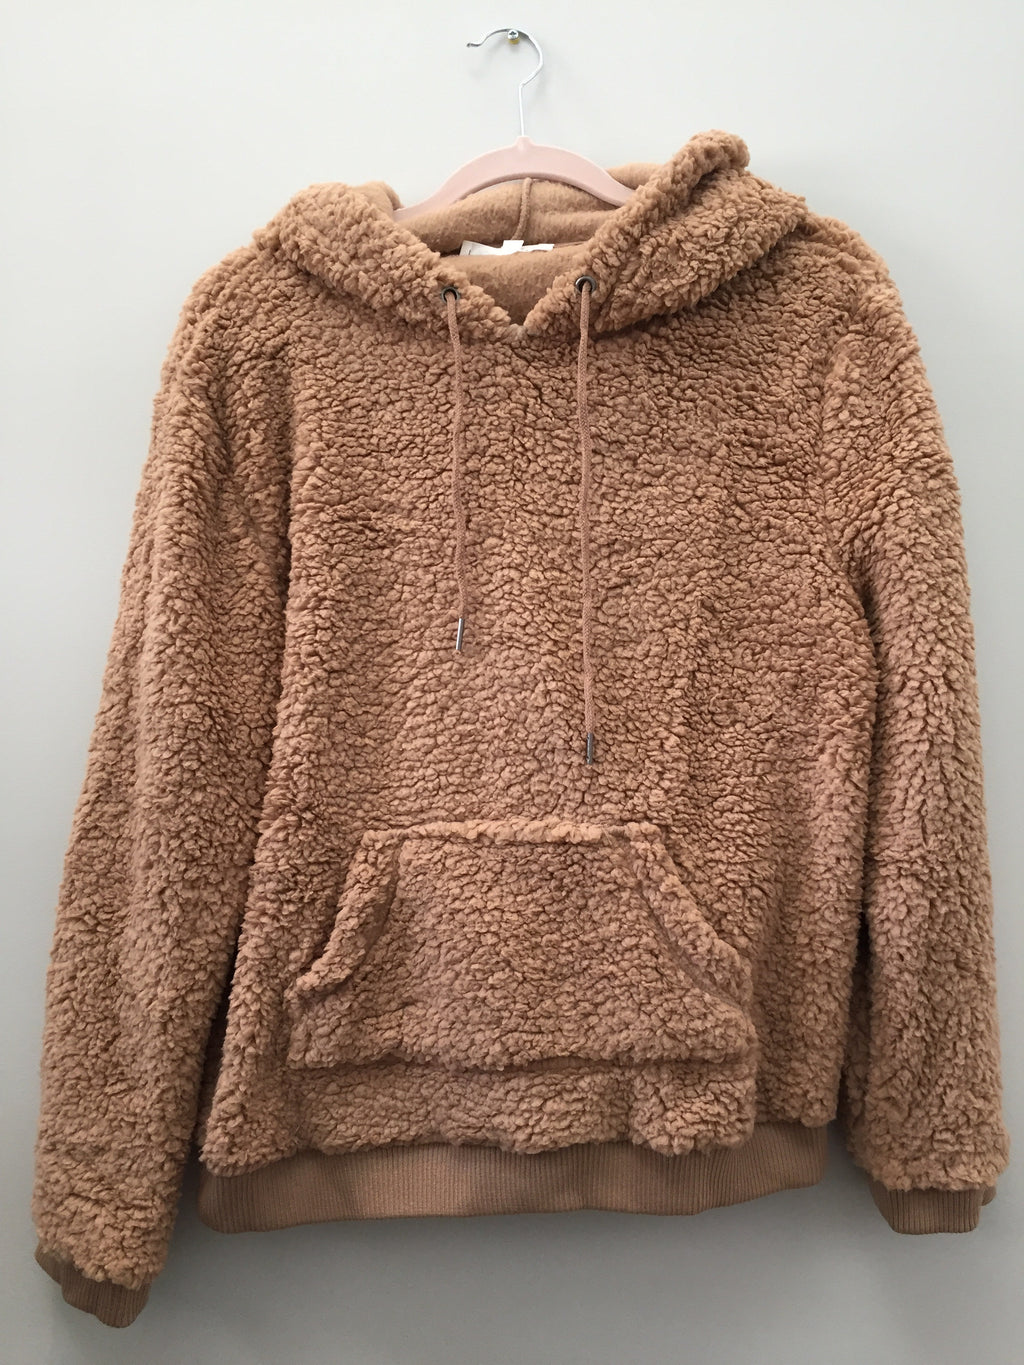 Devon Teddy Bear Hoodie- Camel - Sweatshirt - The Valley Boutique - Canada Online Shopping